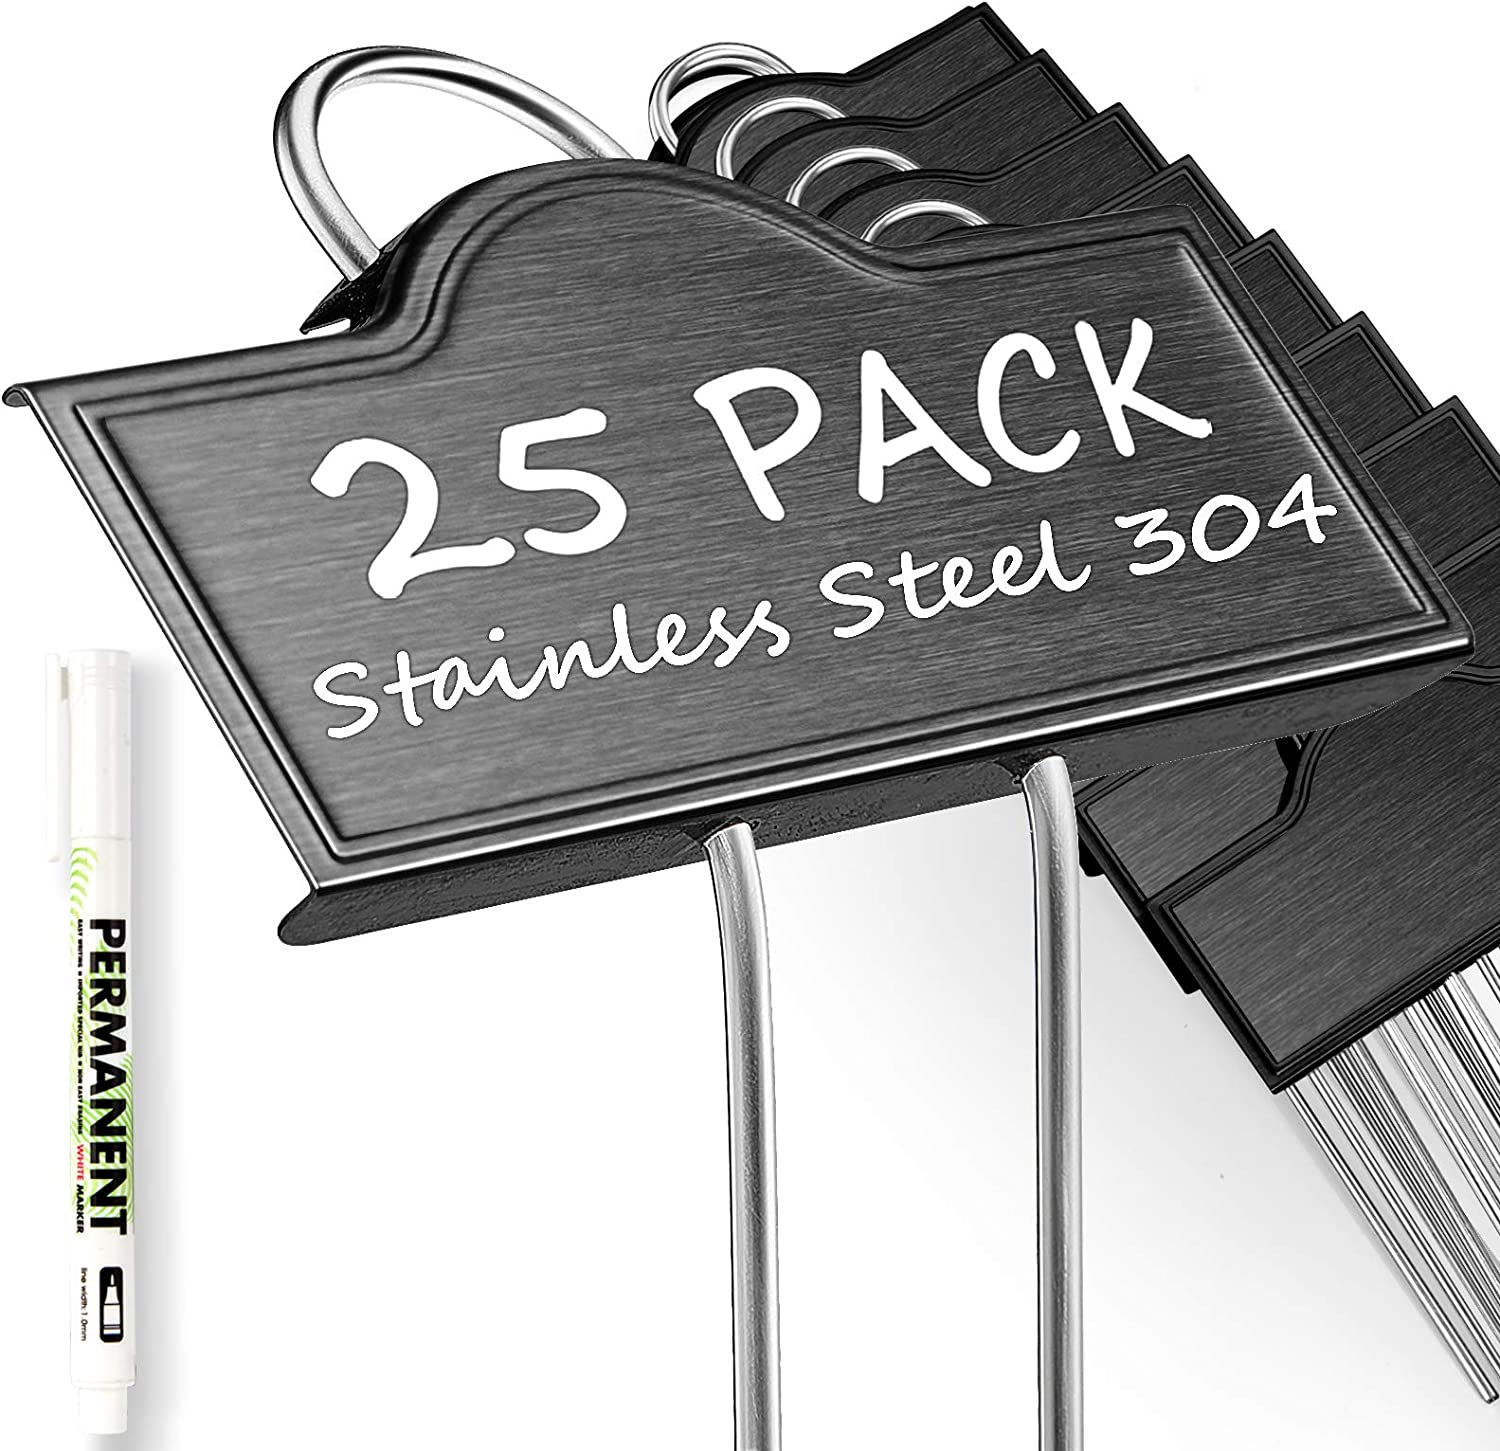 Metal Plant Labels Weatherproof 25 Pack, Black Garden Markers Tags Outdoor for Plants Vegetables Herb Seedlings Flowers with a Pen, Label Area 3.74'' x 1.39'' Height 10.75 Inch